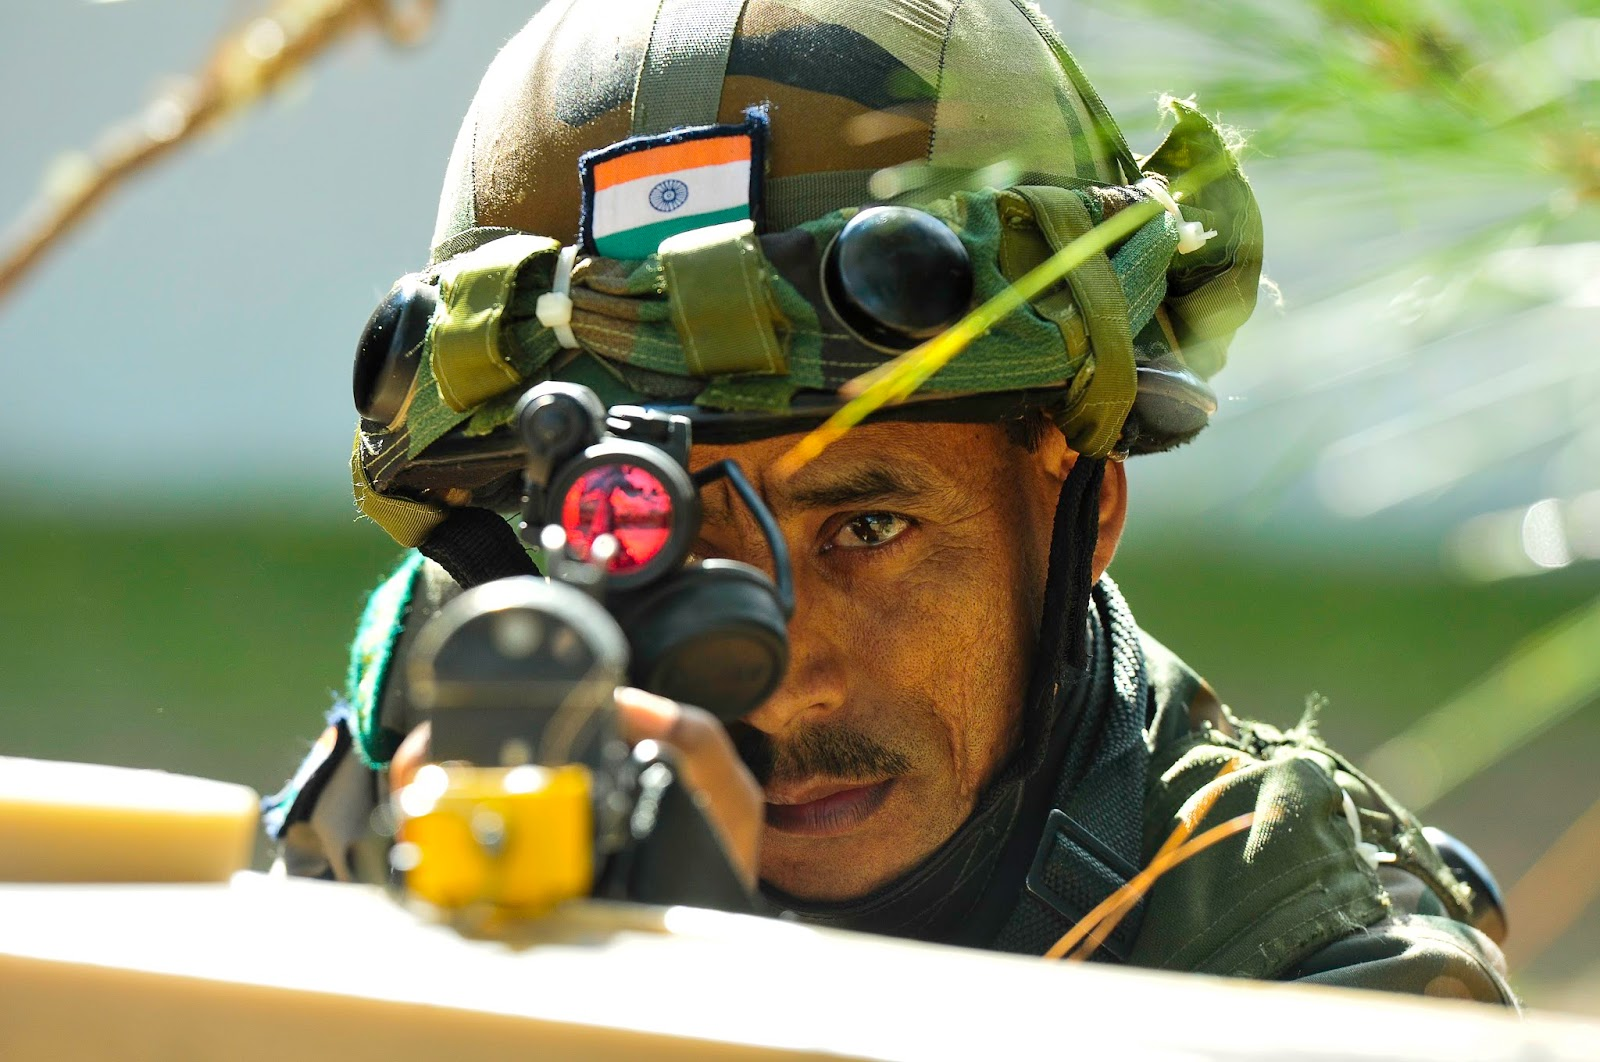 Indian army hd image free download